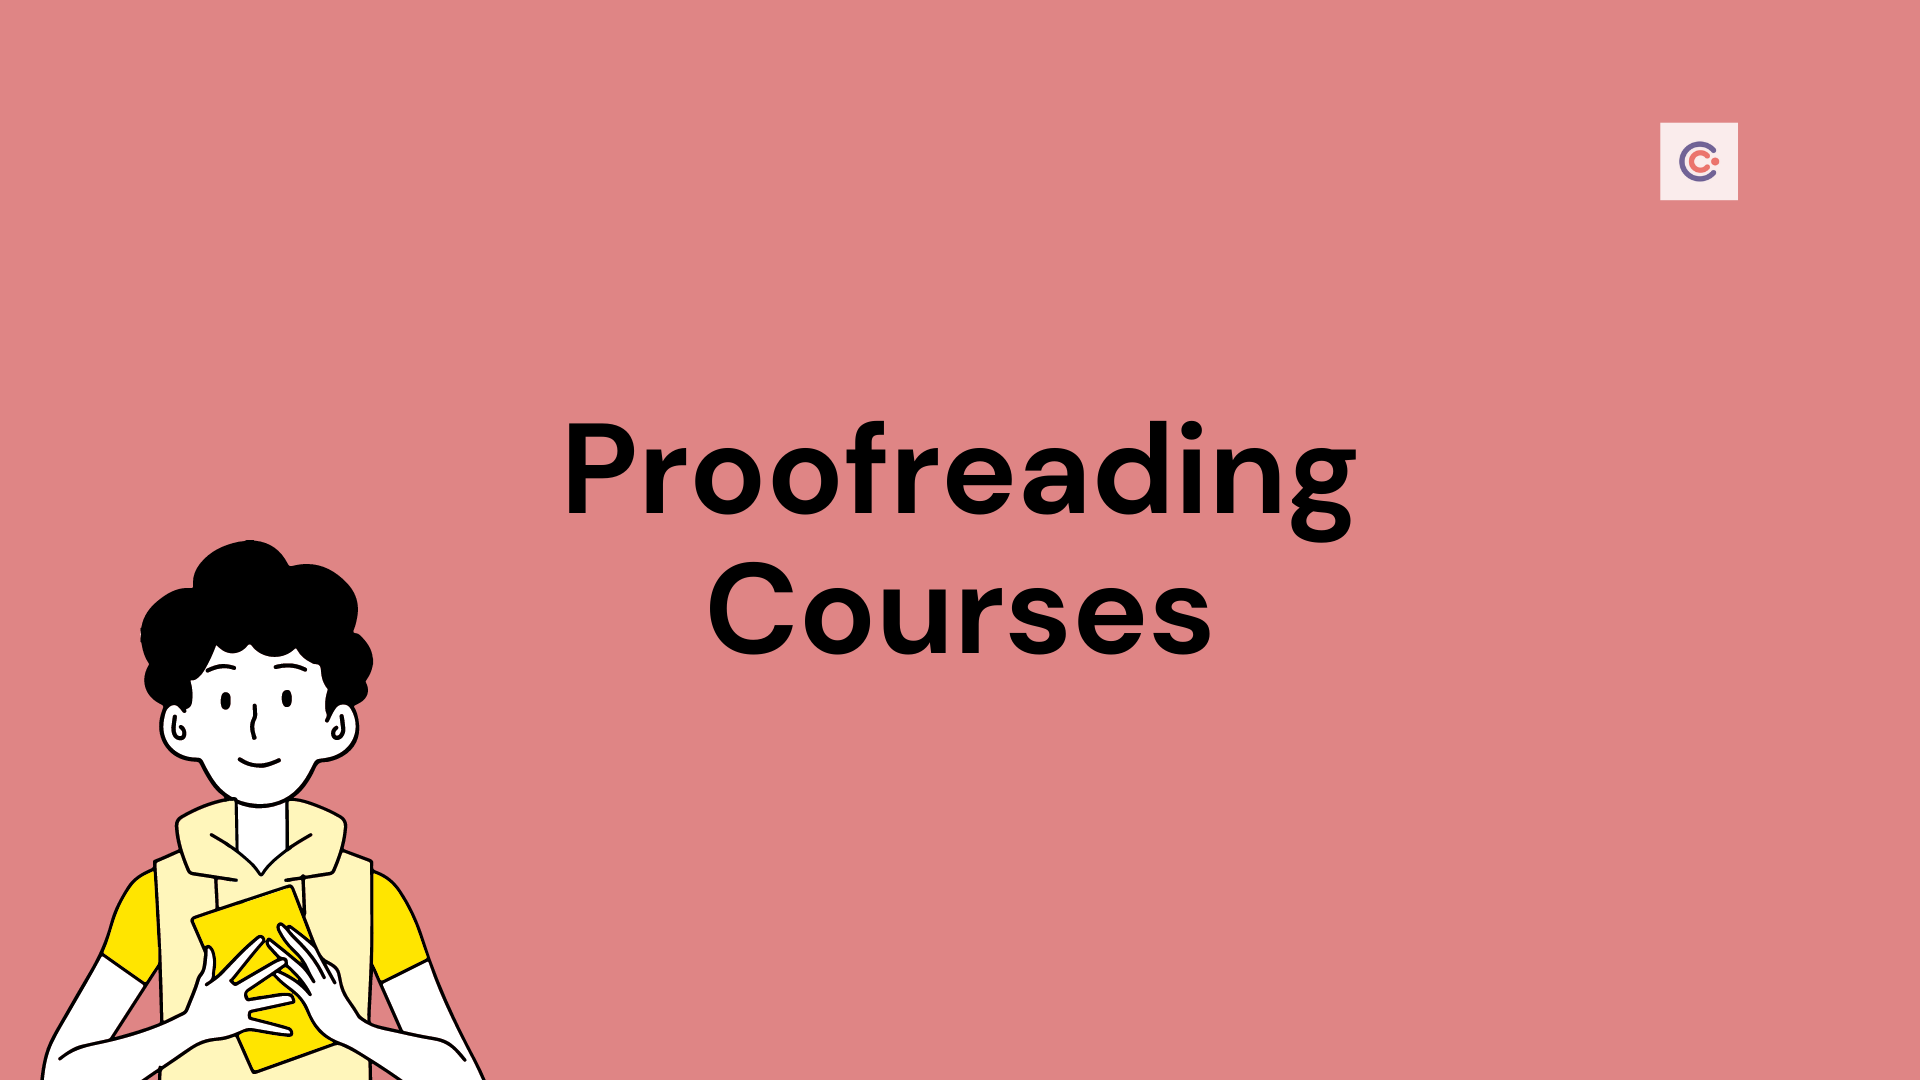 5 Best Proofreading Courses & Classes - Learn Proofreading Online